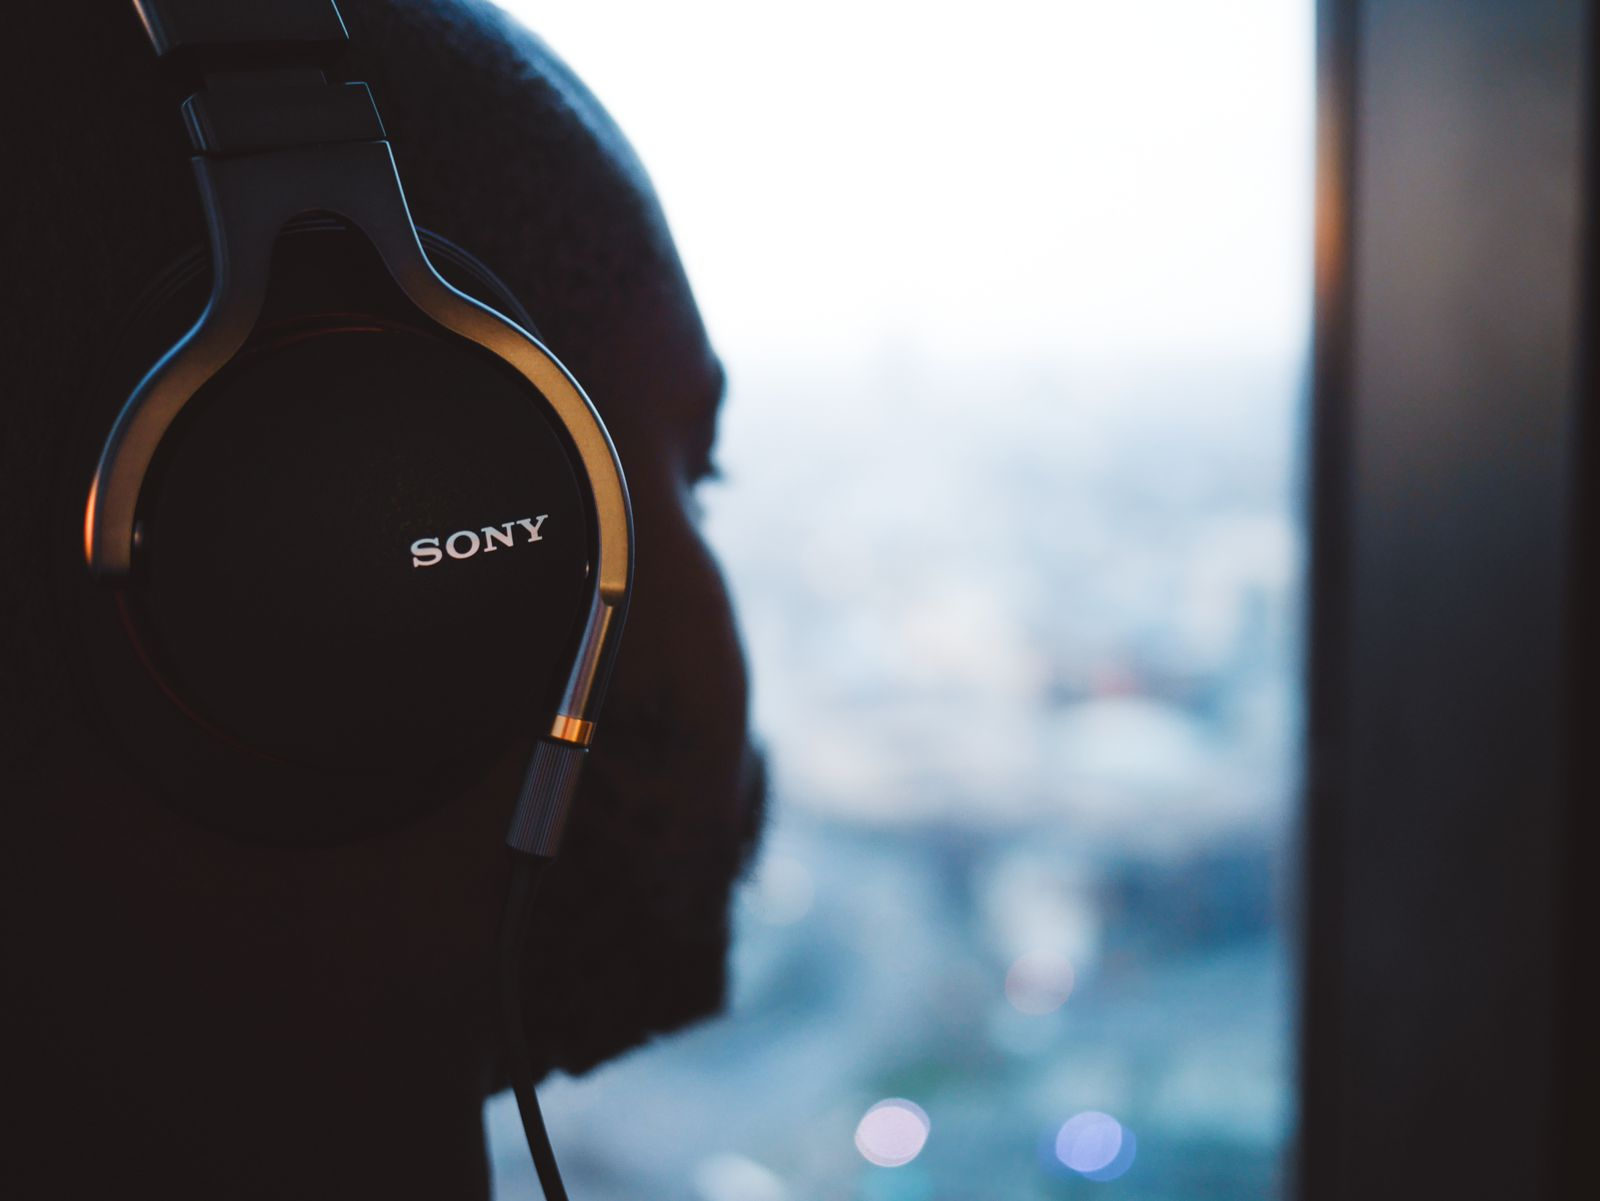 the Sony headphones (officially called the MDR-1A) and the Sony Walkman MP3 Player (officially called the NWZ-A15) (10)